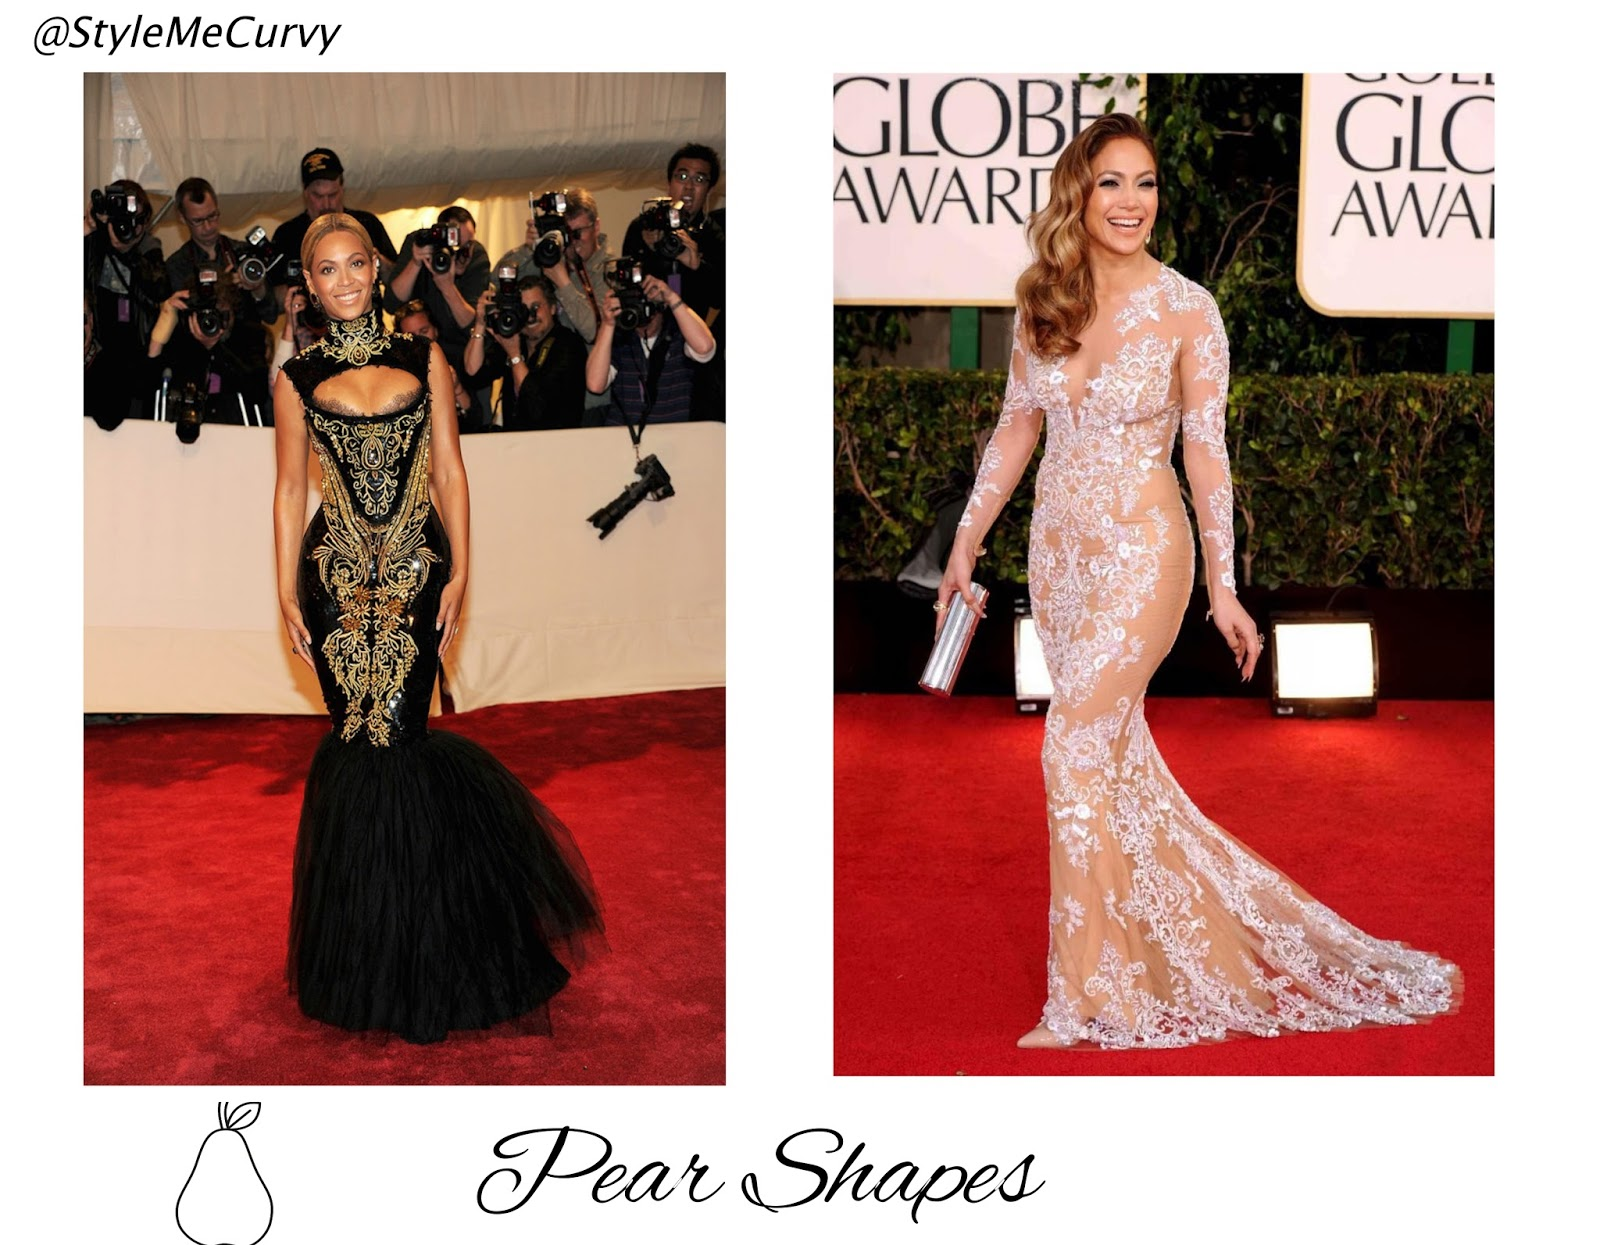 pear shapes - beyonce - jennifer lopez